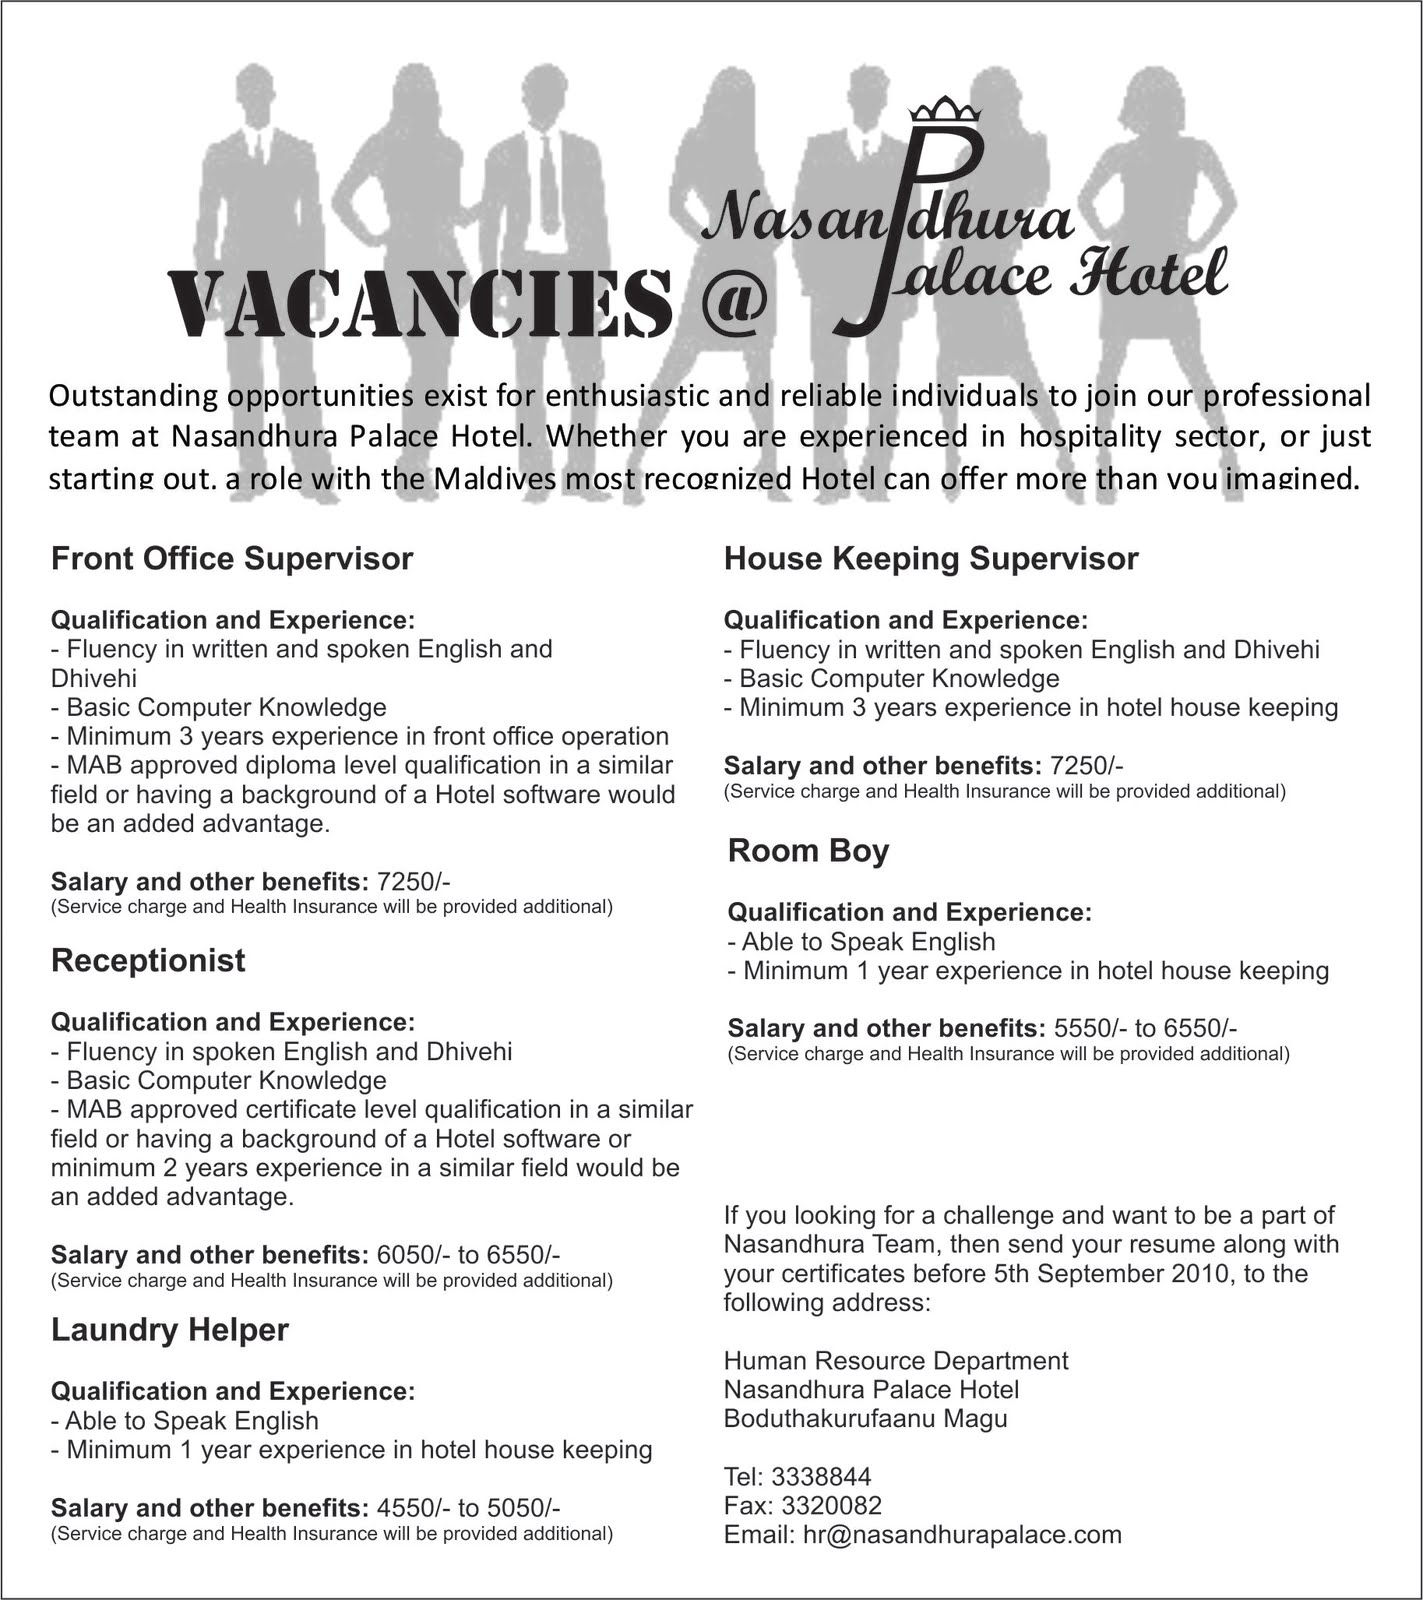 Job Maldives: Vacancies at Nasandhura Palace Hotel